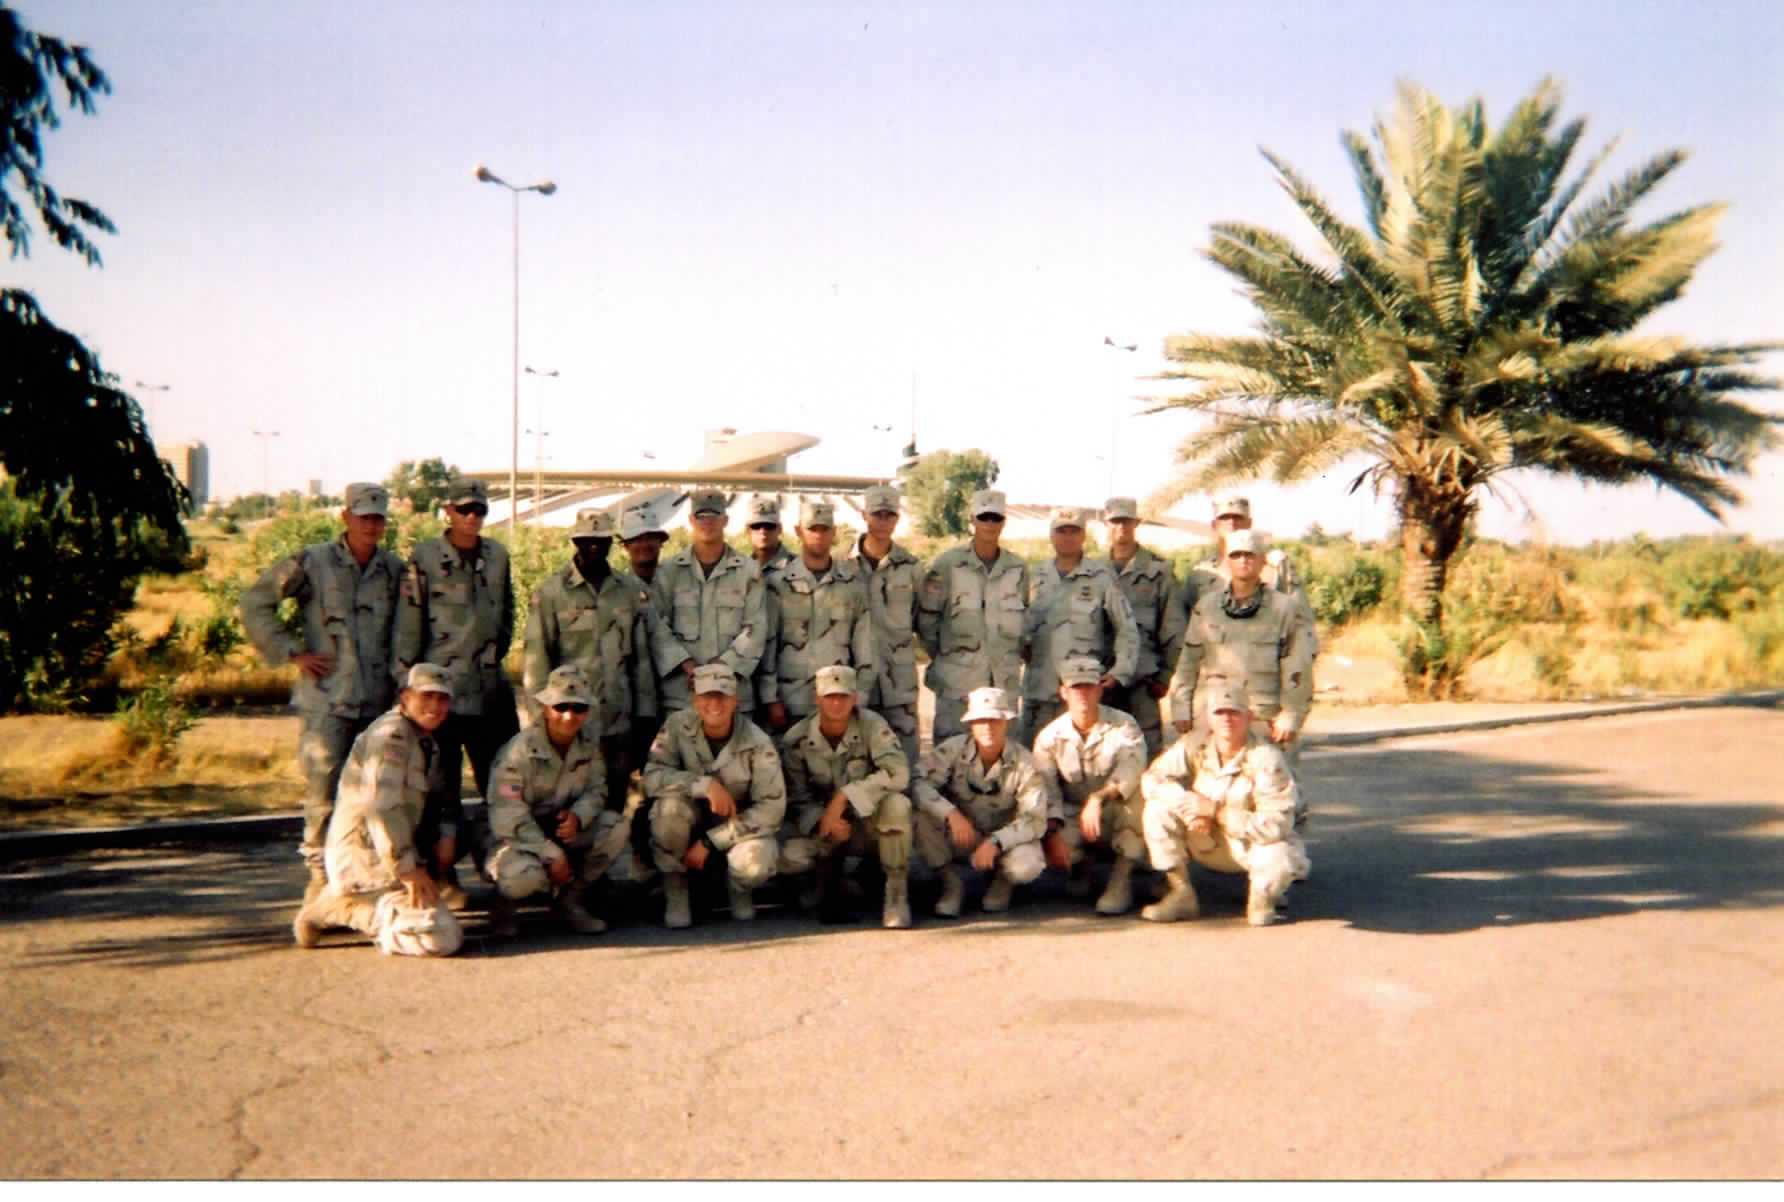 Kosovych's 2nd Platoon in Baghdad's Green Zone